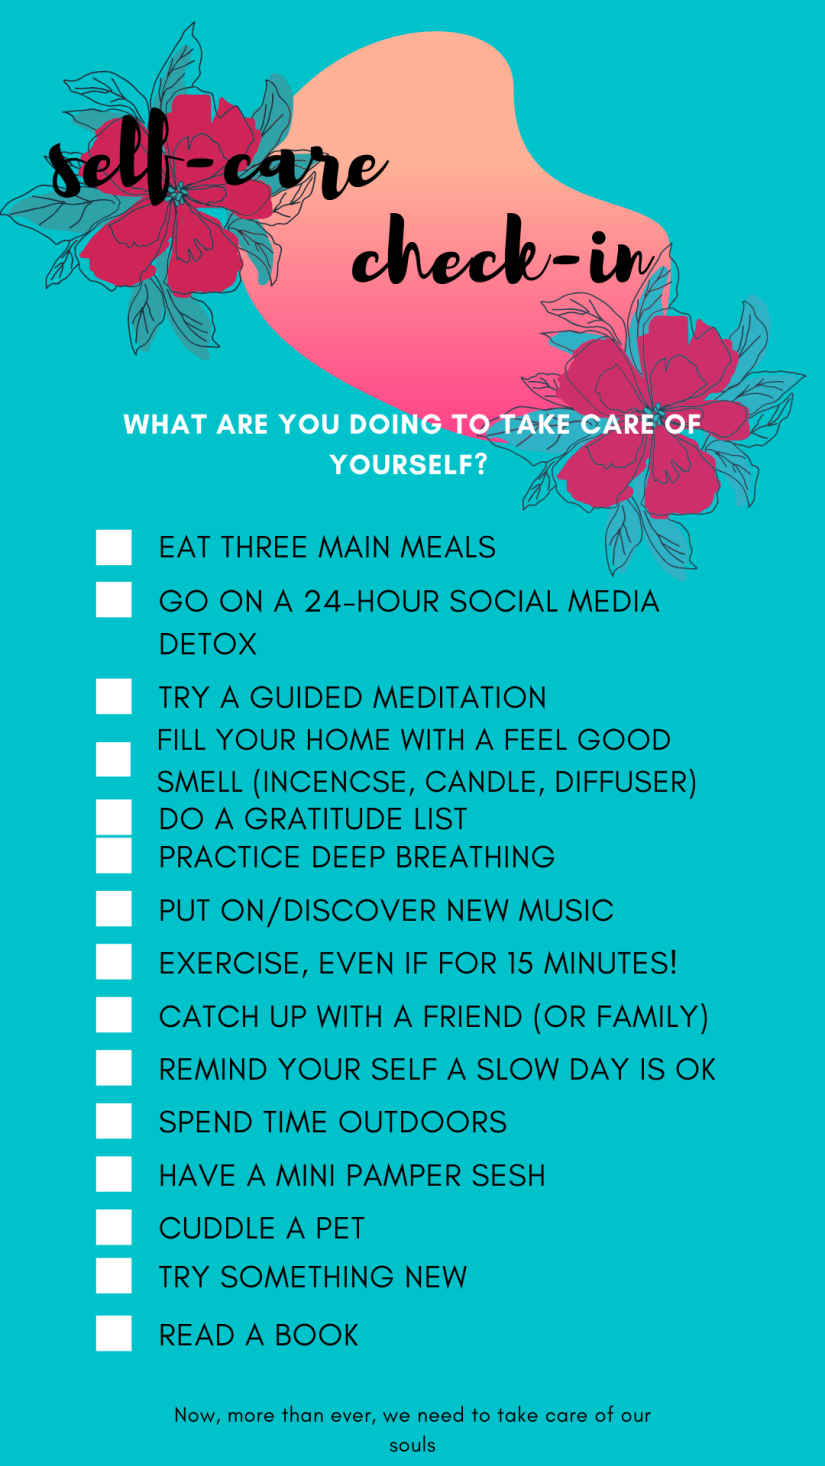 Blue Self-Care Checklist Advocacy Interactive Instagram Story